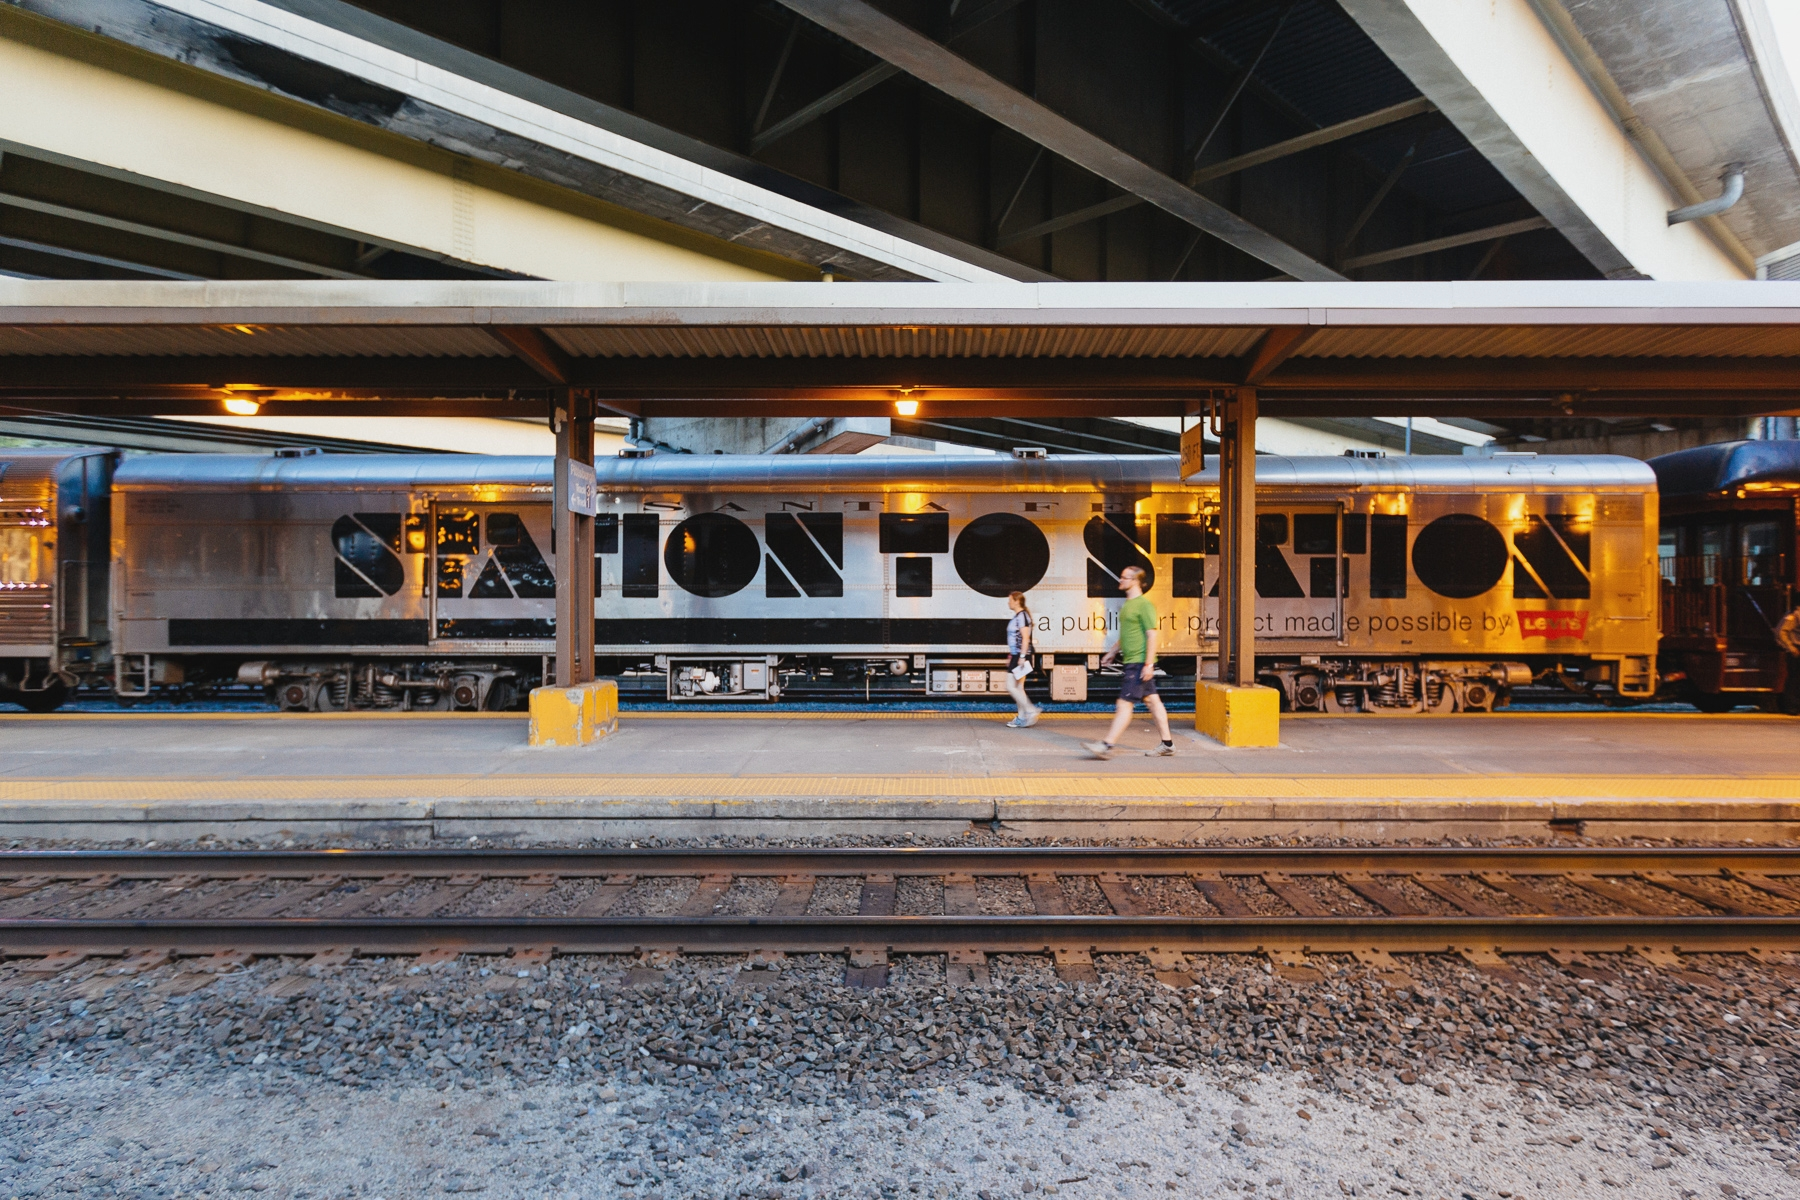 levis station to station